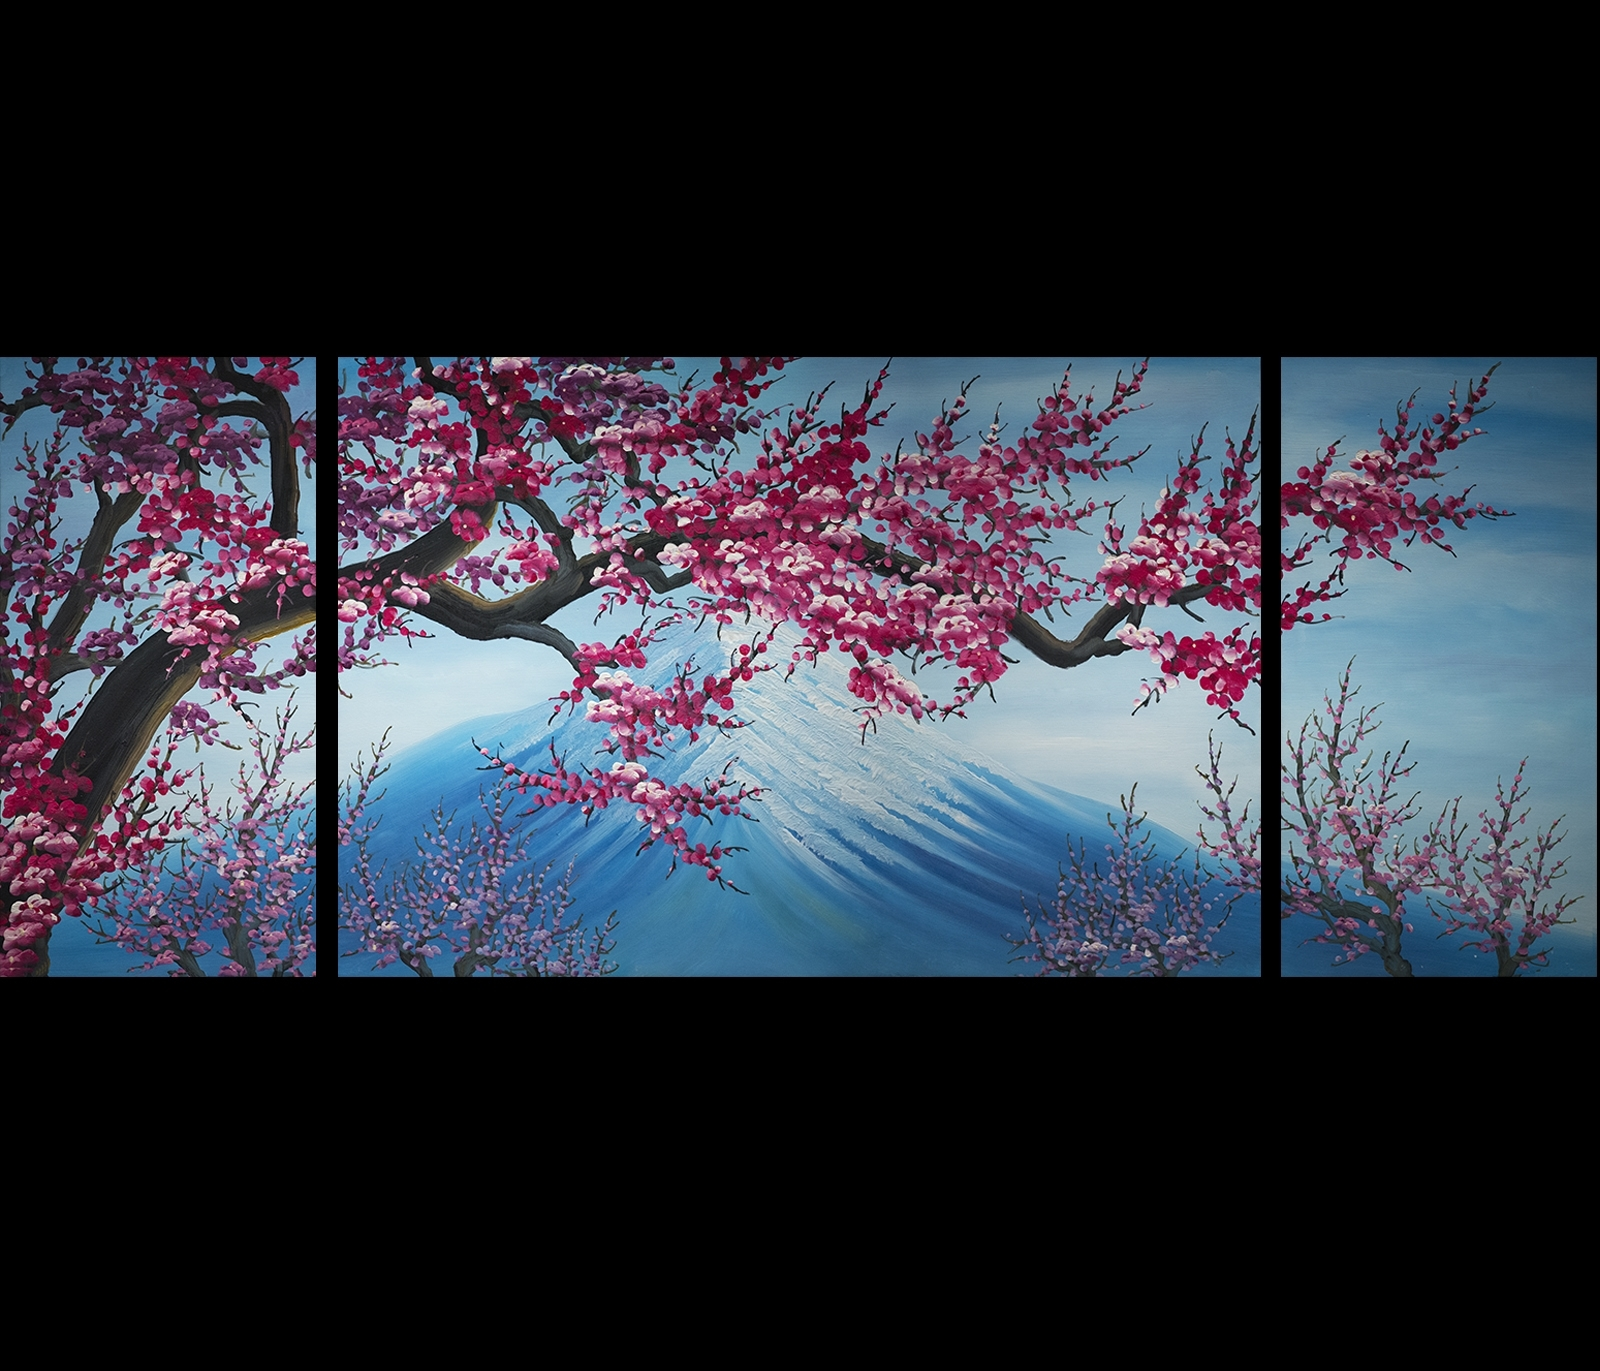 Blossom Canvas Wall Art Modern Abstract Art Home Decor With Regard To Most Recent Abstract Cherry Blossom Wall Art (View 7 of 20)